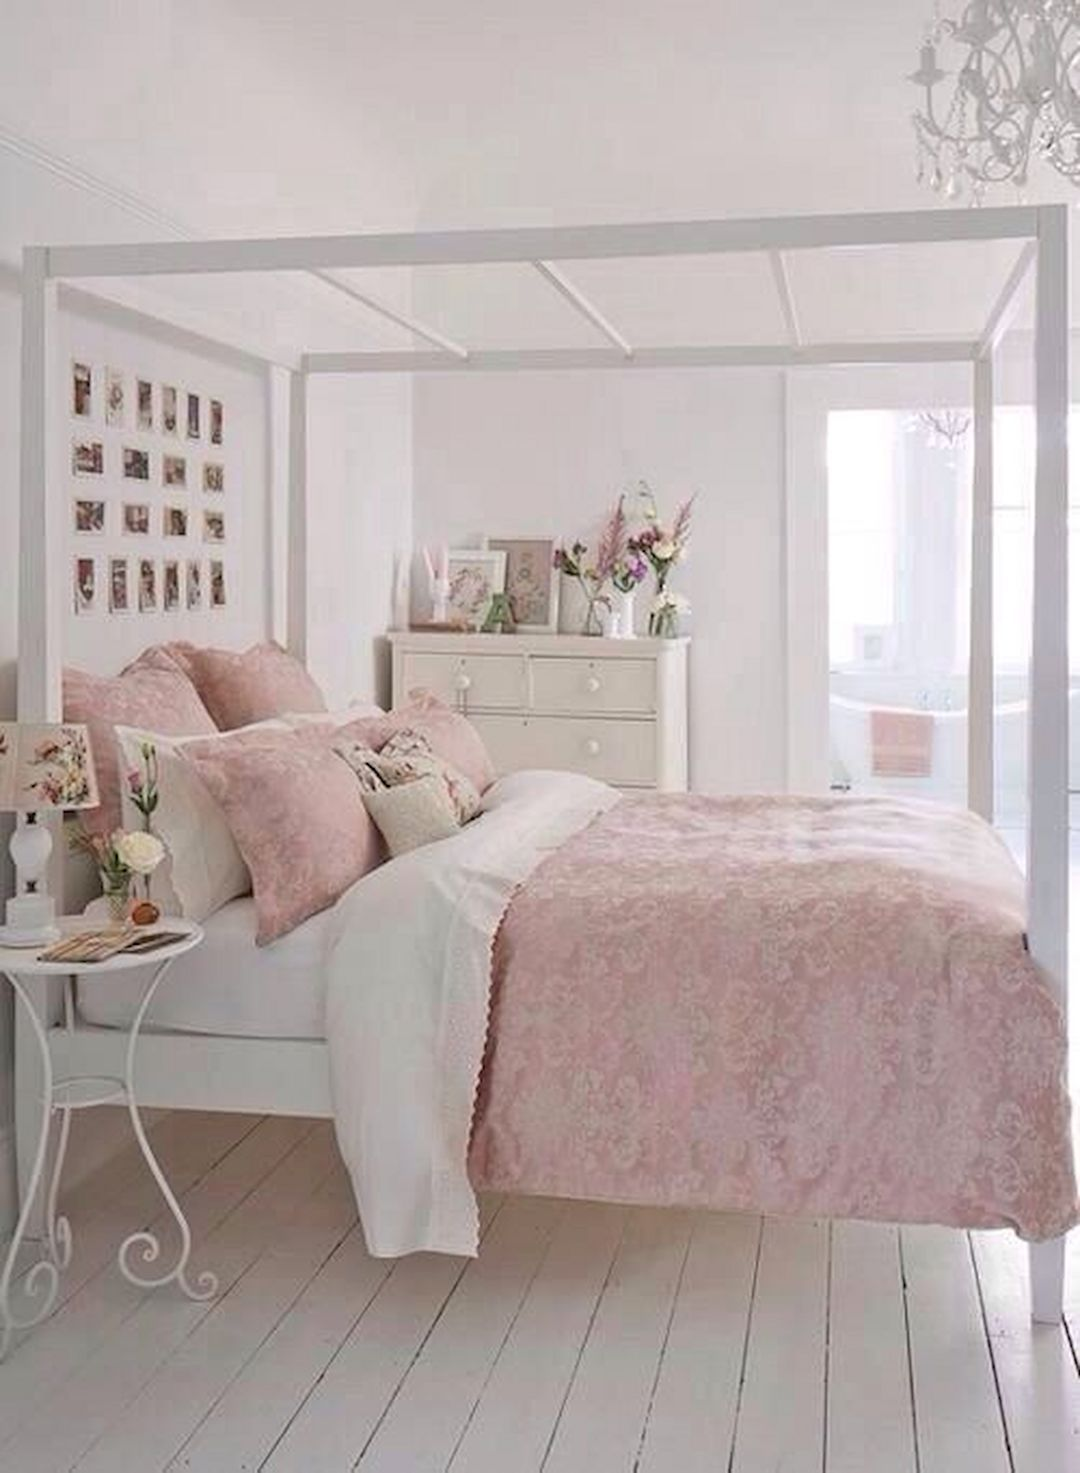 25 Gorgeous Pale Pink Walls Ideas To Enhance Your Room Beautiful Shabby Chic Decor Bedroom Chic Bedroom Decor Chic Bedroom Design